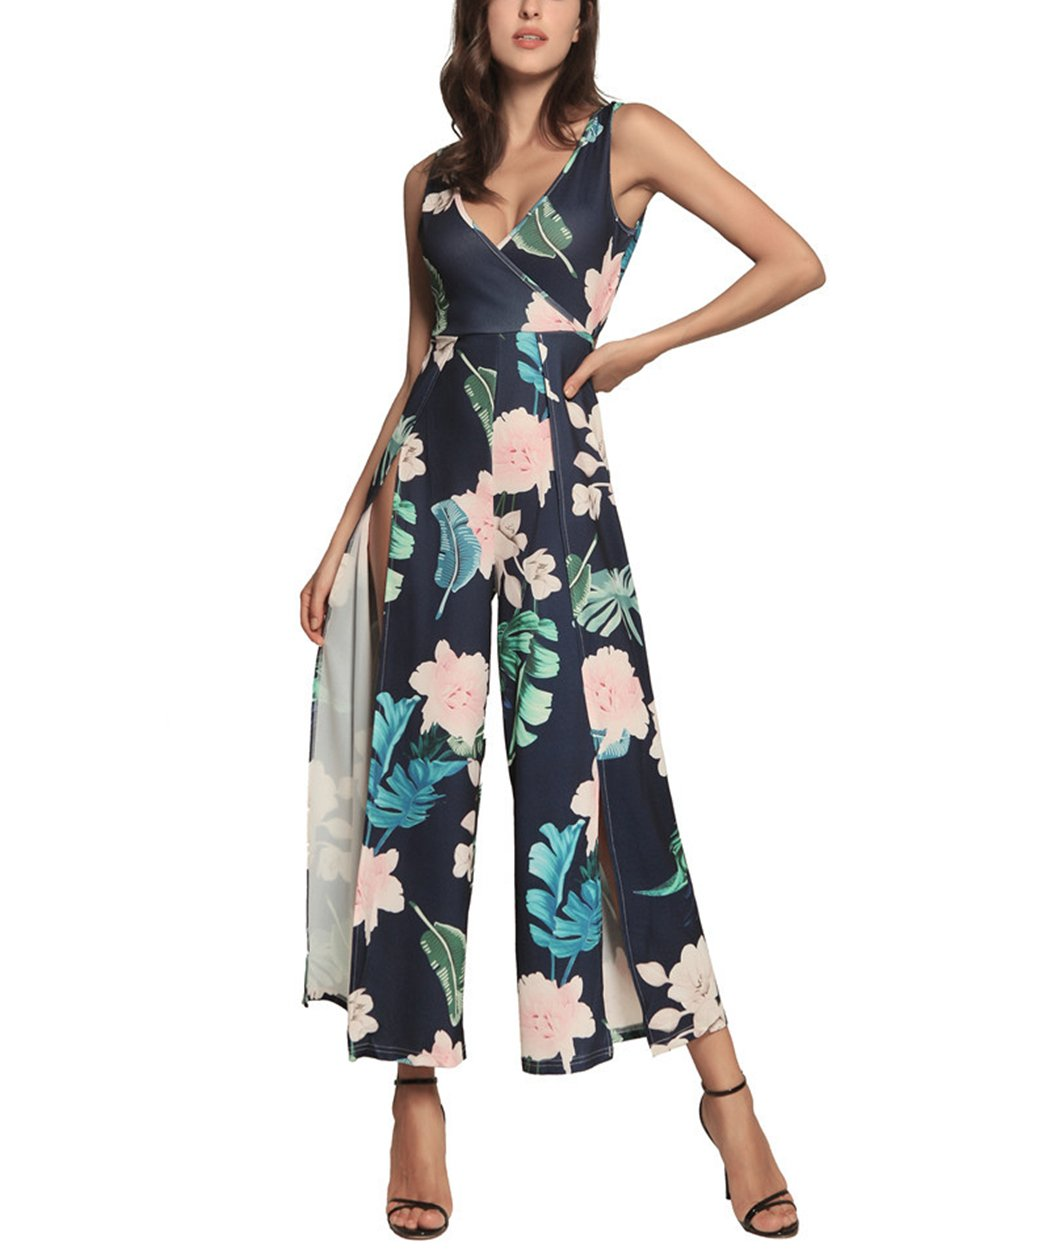 Women Jumpsuit, L'ananas 2018 V Neck Broad Leaf Floral Printing Backless Sleeveless Split Wide Legs Long Rompers Overalls (CN-S/US-2, Dark Blue) by L'ananas-Women Jumpsuit